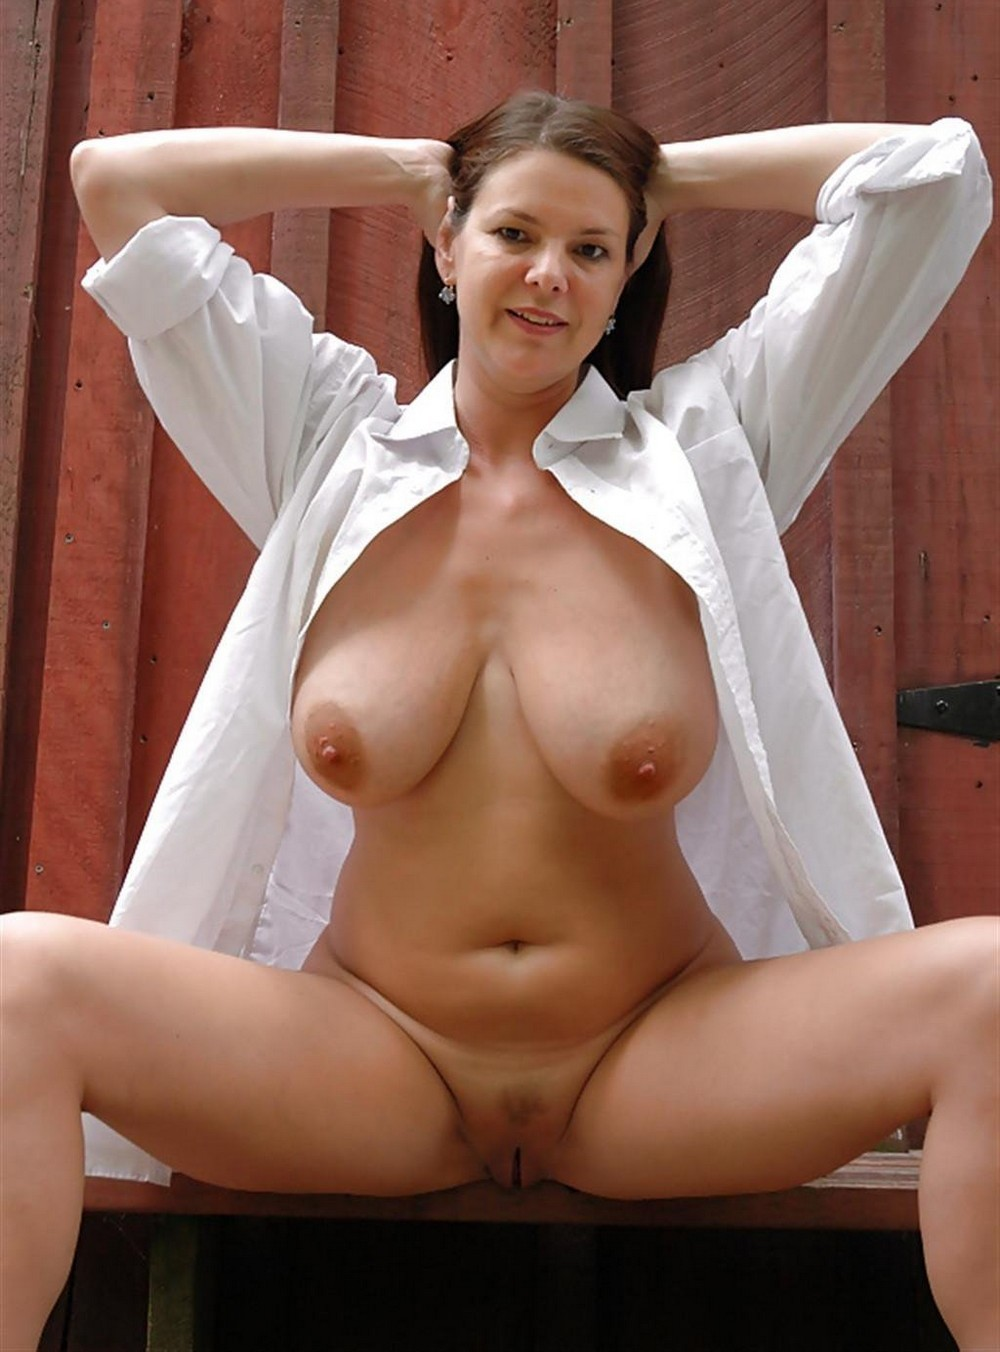 Naked_dirty_mature_woman_compilation_11.jpg